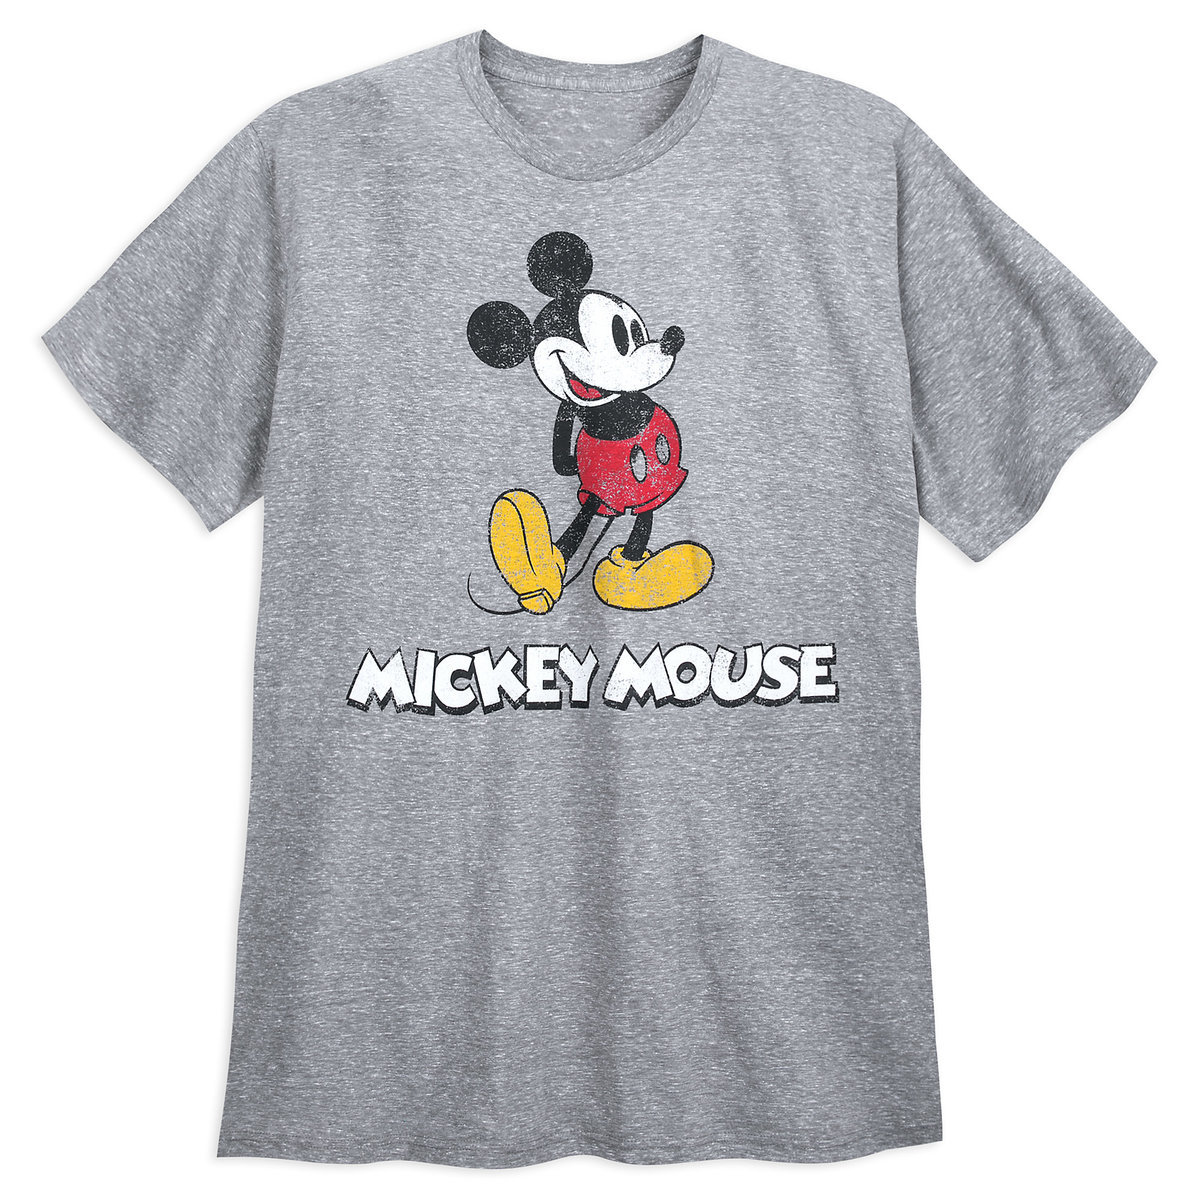 65518d1a Product Image of Mickey Mouse Classic T-Shirt for Men - Gray # 1